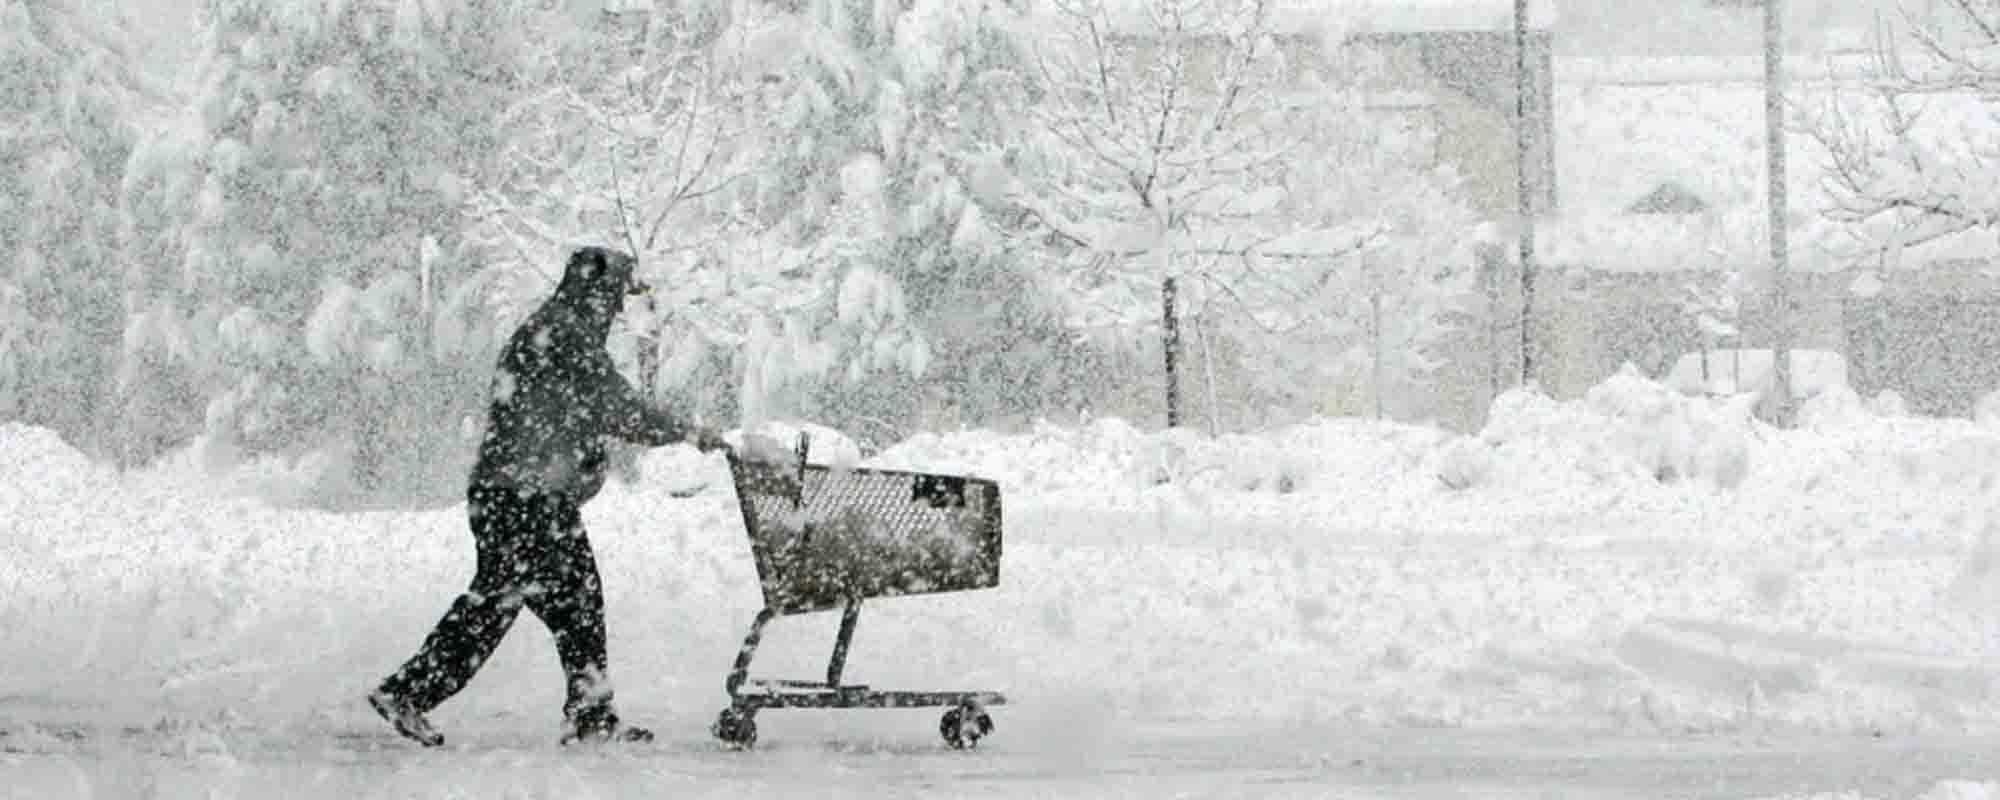 property protection during winter